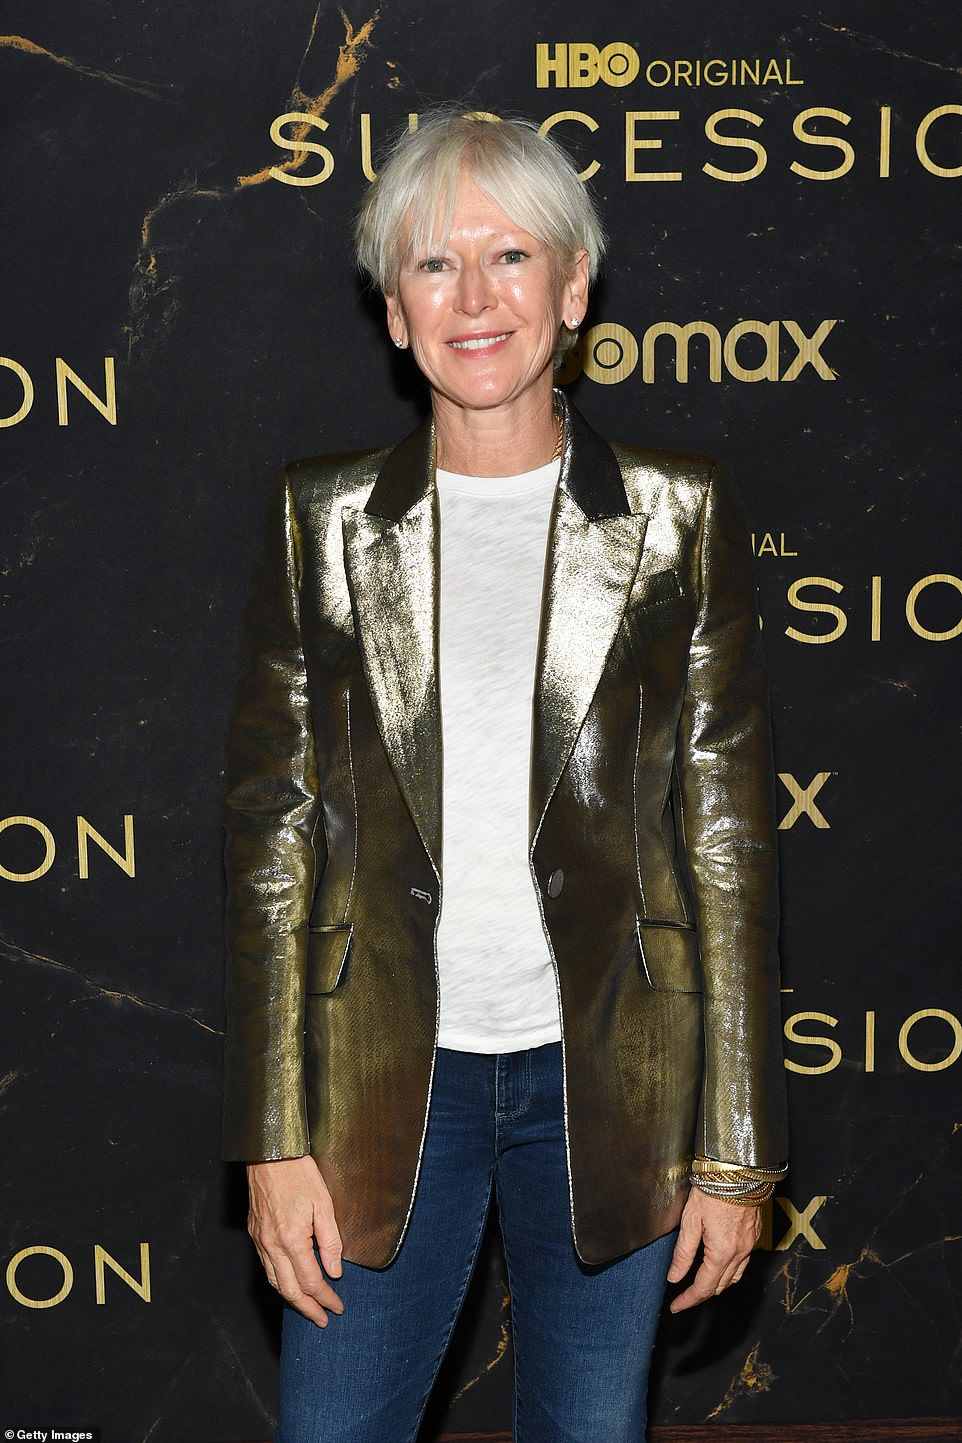 Metallic moment:Joanna Coles looked marvelous in a metallic gold jacket styled with some skintight jeans and a plain white tee